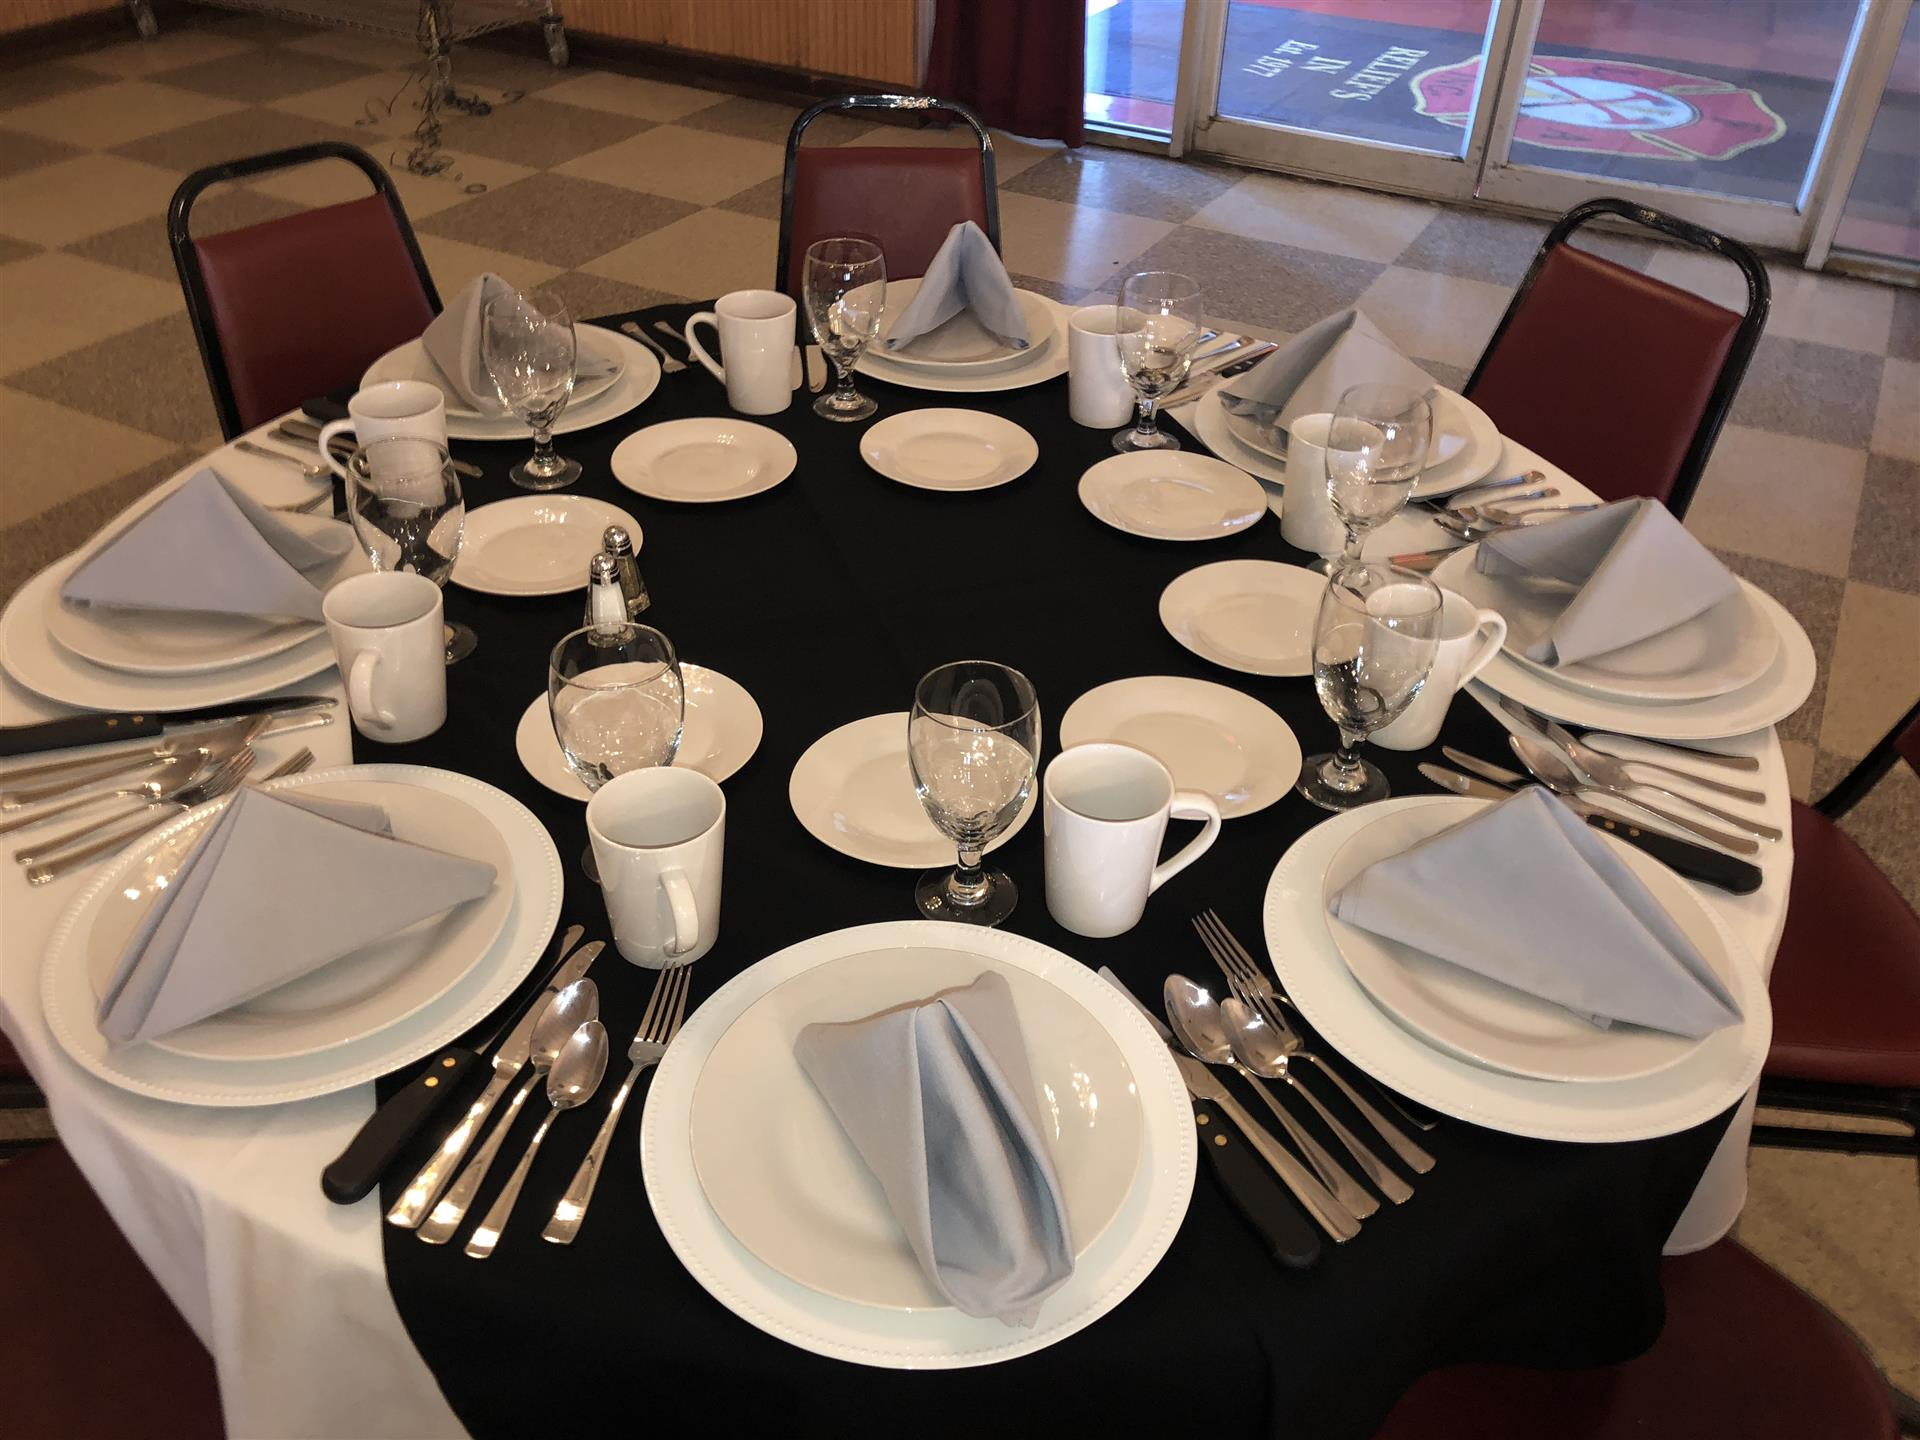 Round table with black tablecloth, plates and silverware